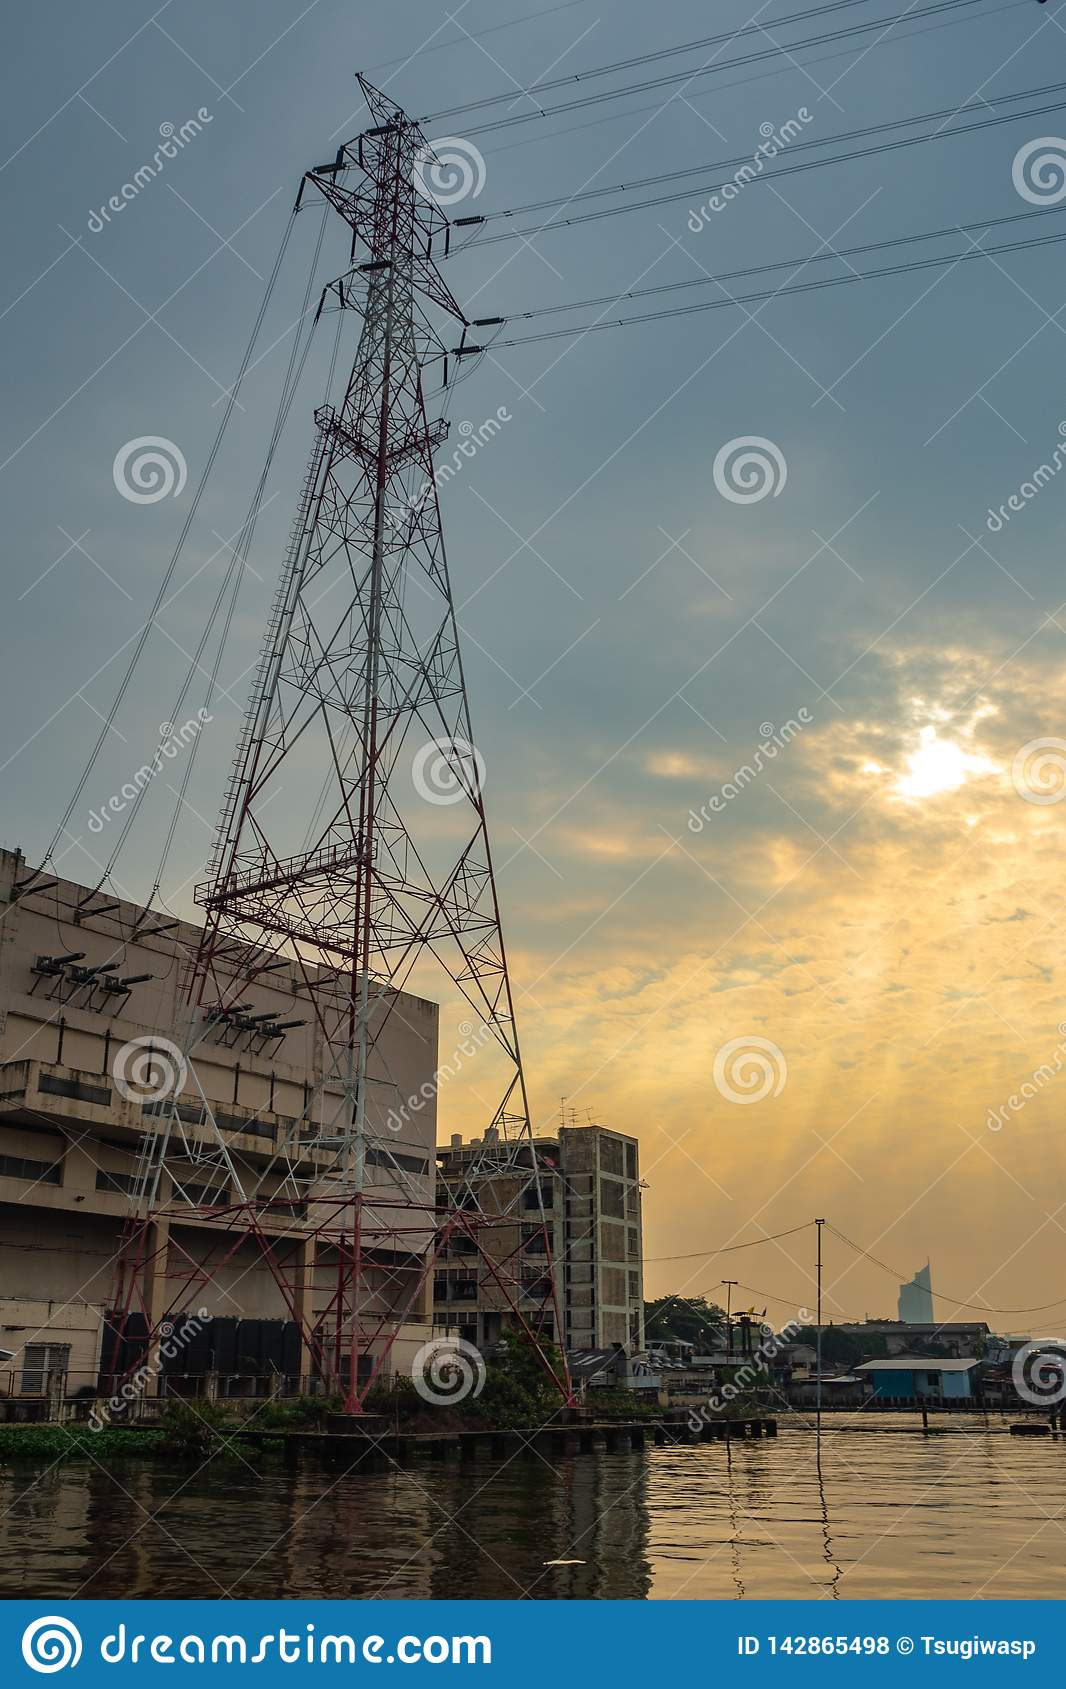 High voltage transmission towers with the cloudy sunrise sky